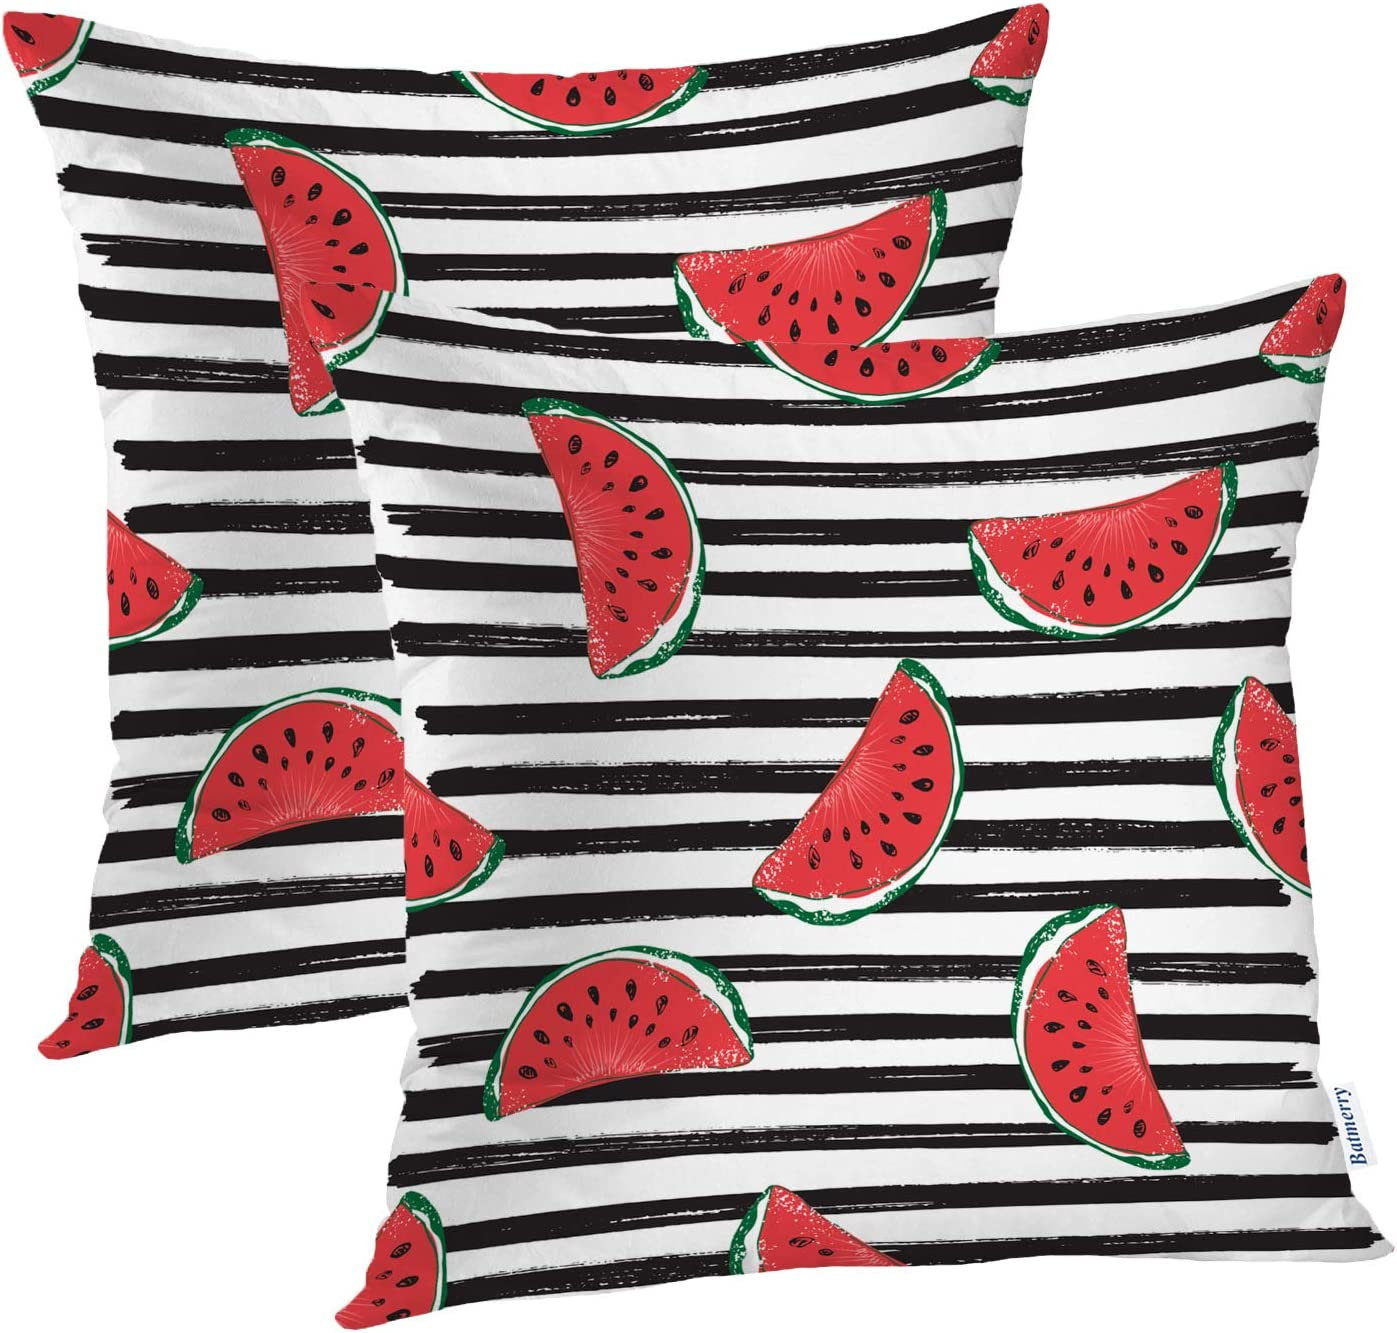 Batmerry Summer Red Green Decorative Pillow Covers, 20 x 20 Inch Colorful Fruits Delicious and Decorative Double Sided Throw Pillow Covers Sofa Cushion Cover Square 20 Inches(Set of 2)